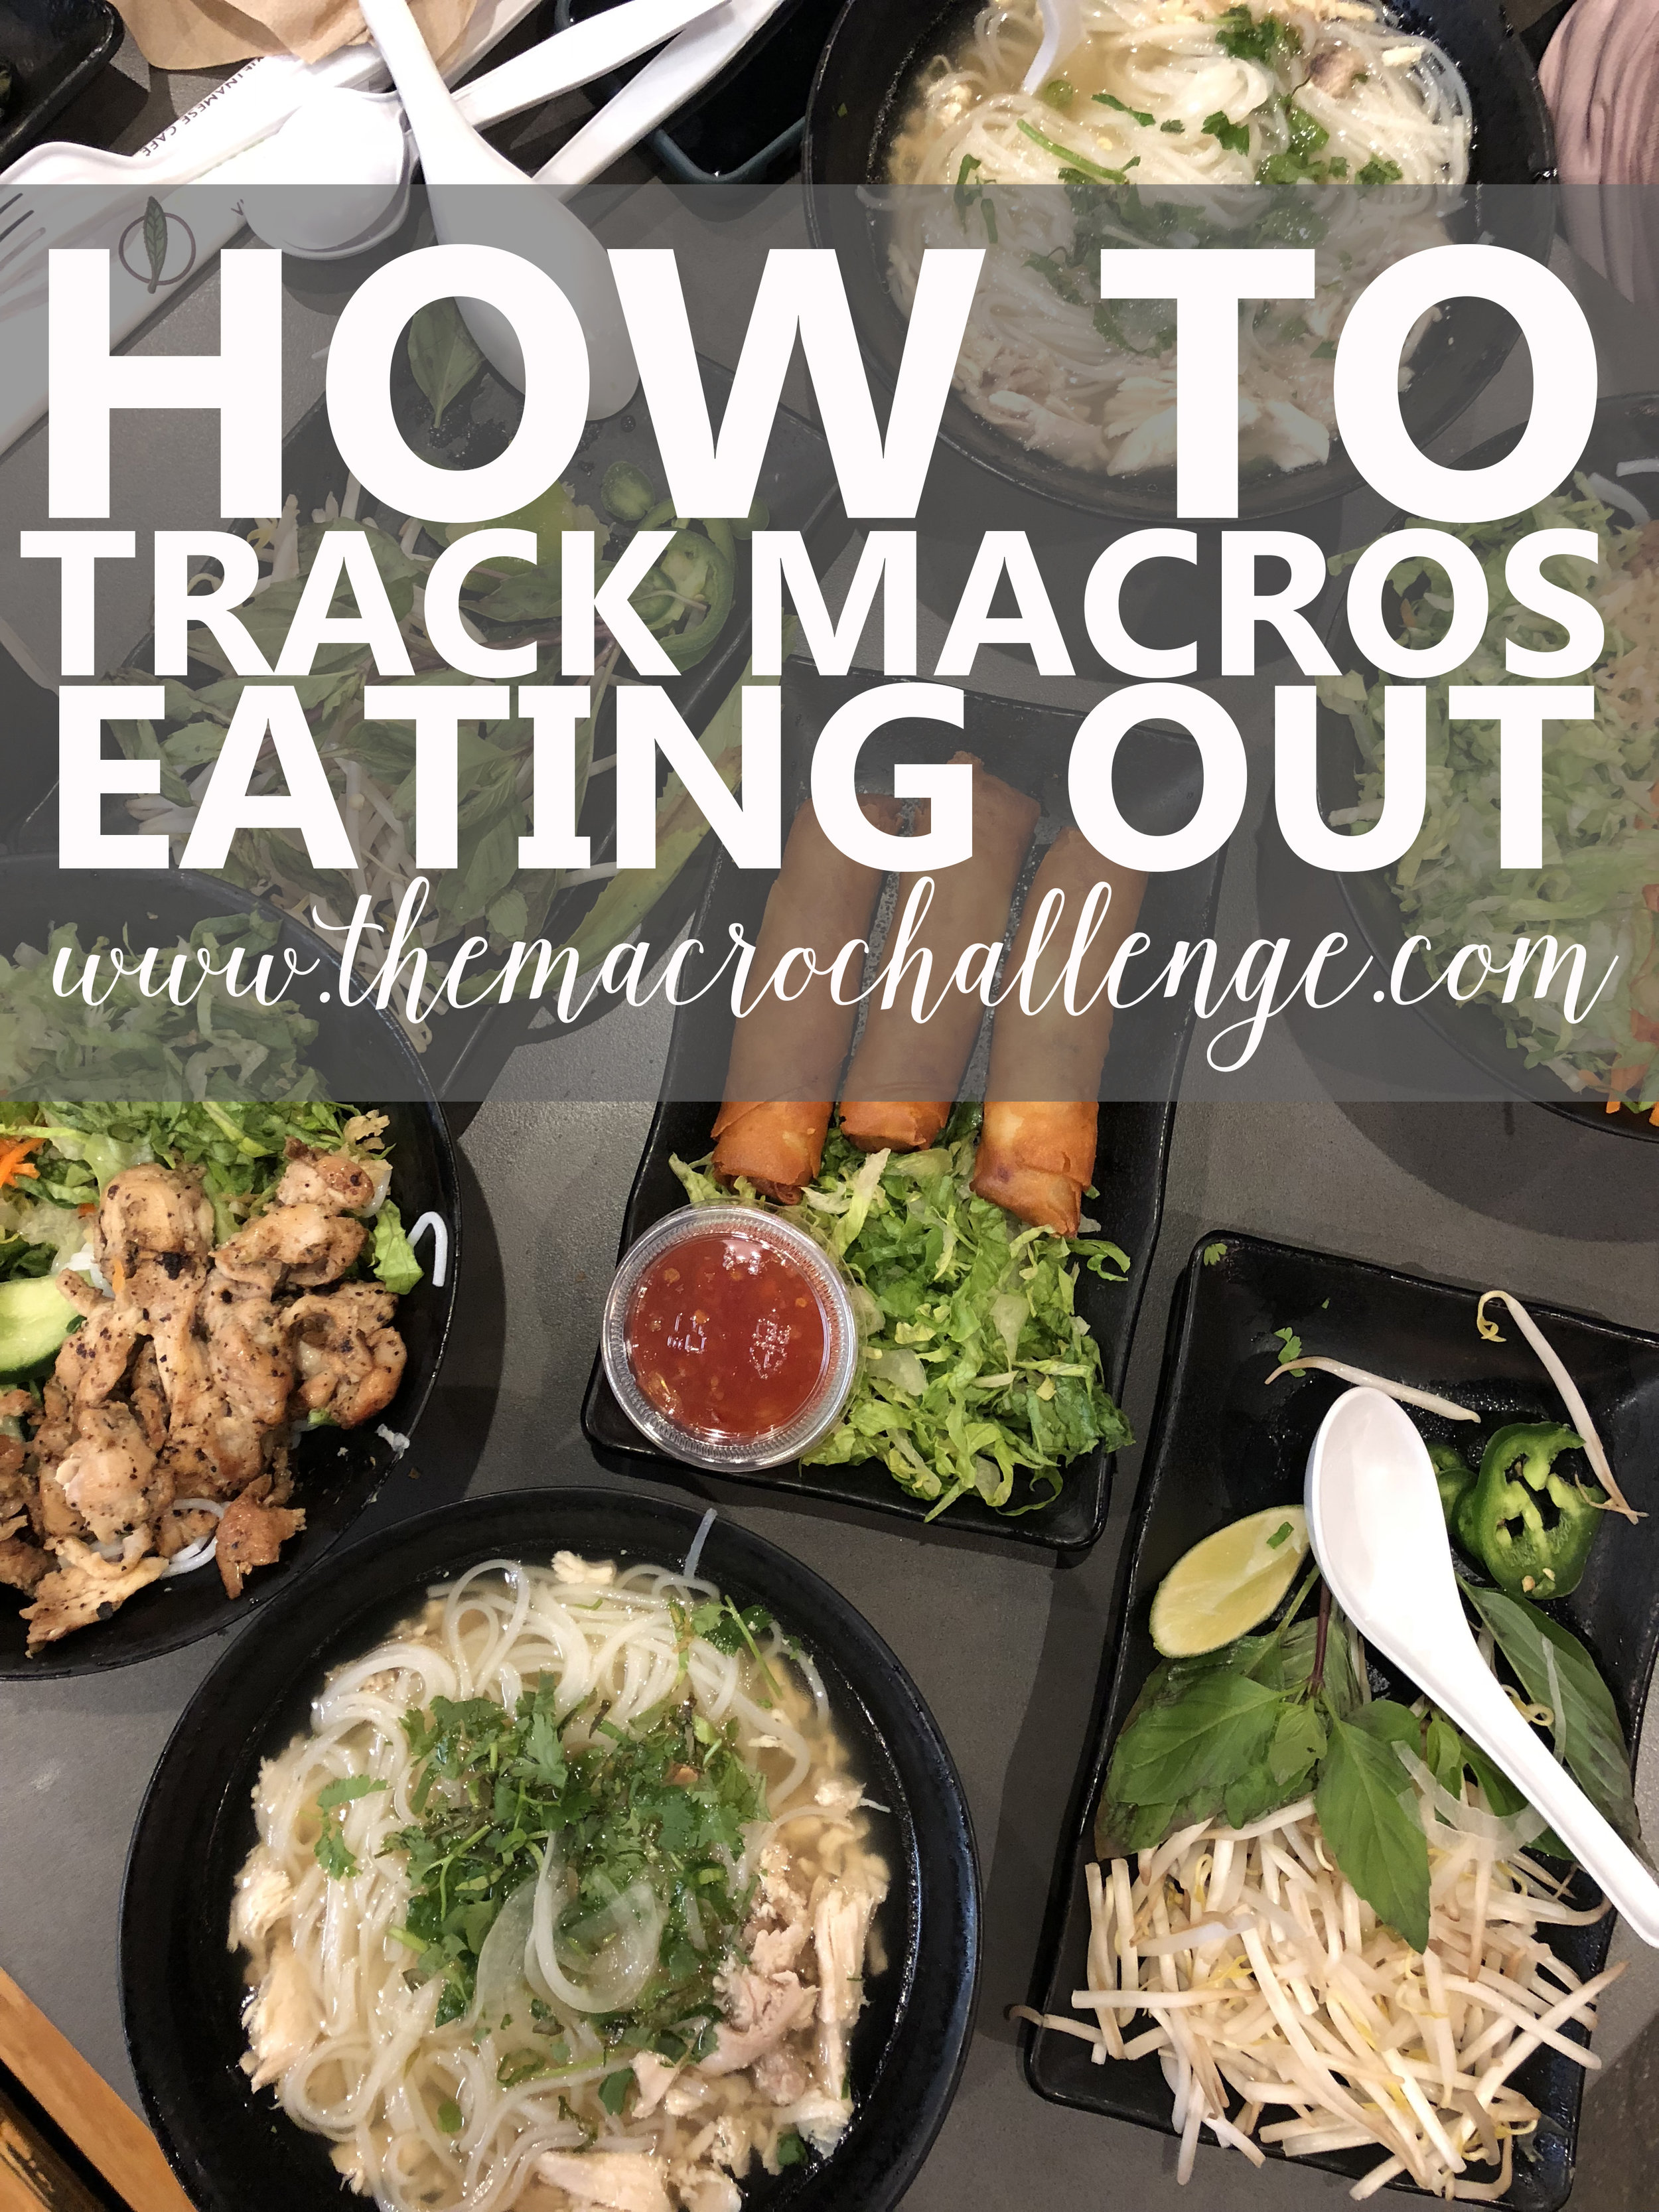 How to Track Macros Eating Out.jpg